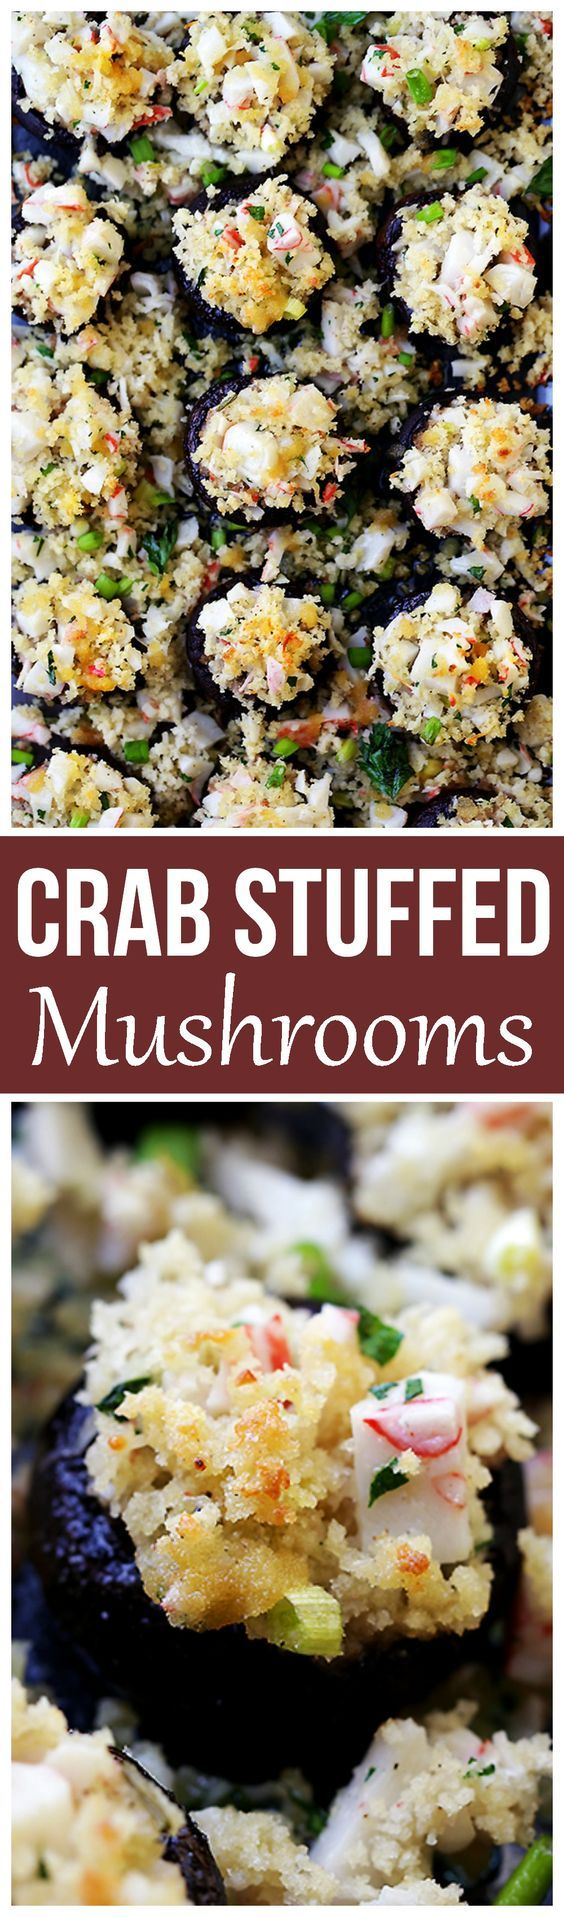 Crab Stuffed Mushrooms - Packed with crab meat and drizzled with garlic butter sauce these delicious stuffed mushrooms are so easy to prepare and they make for the perfect appetizer!